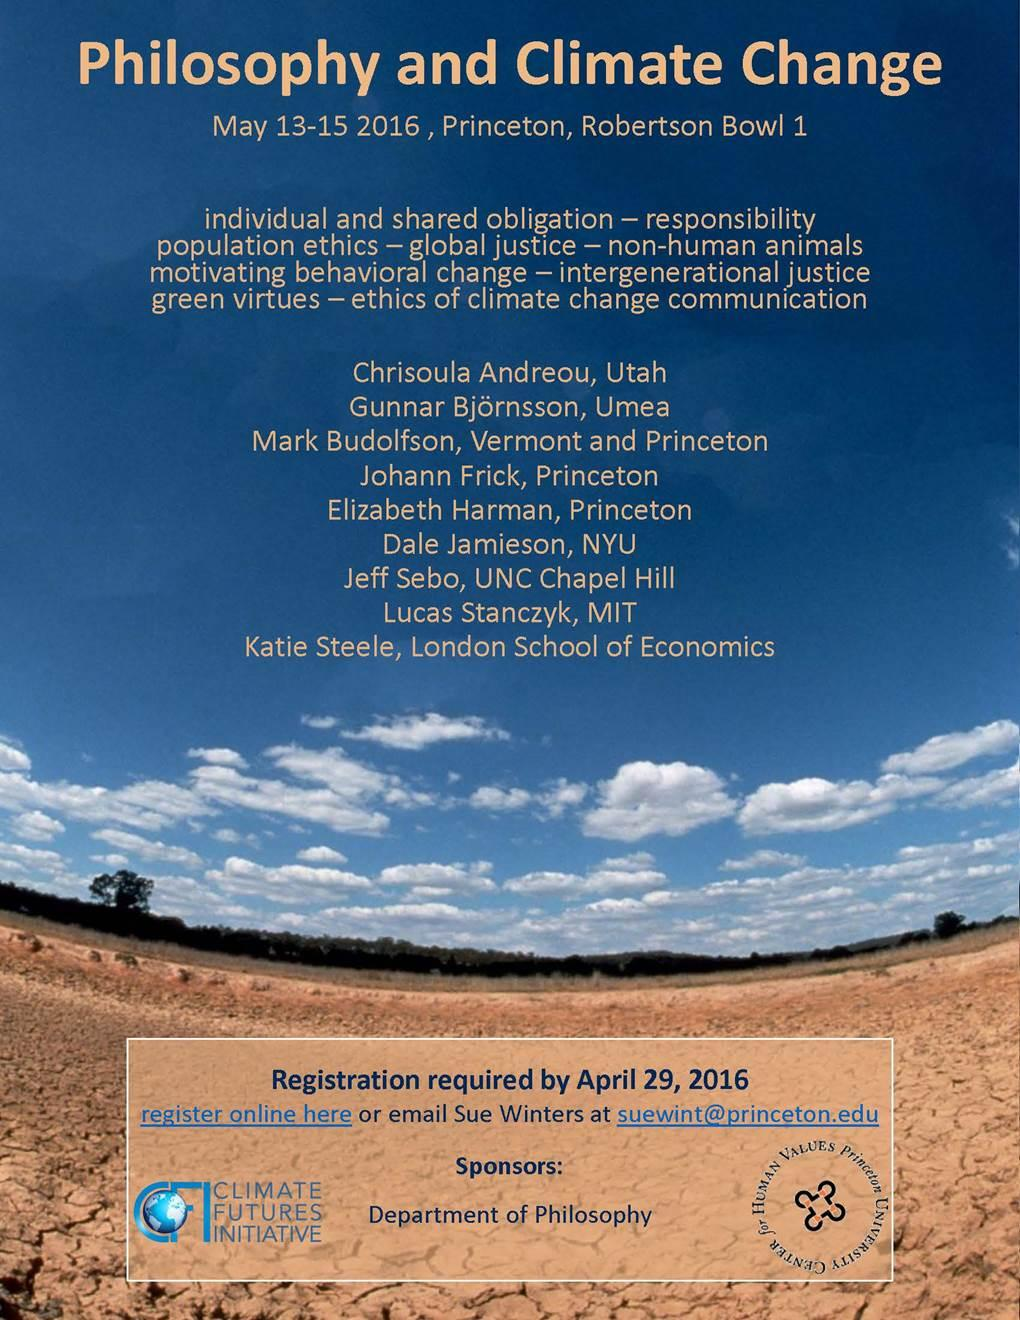 Philosophy and Climate Change conference